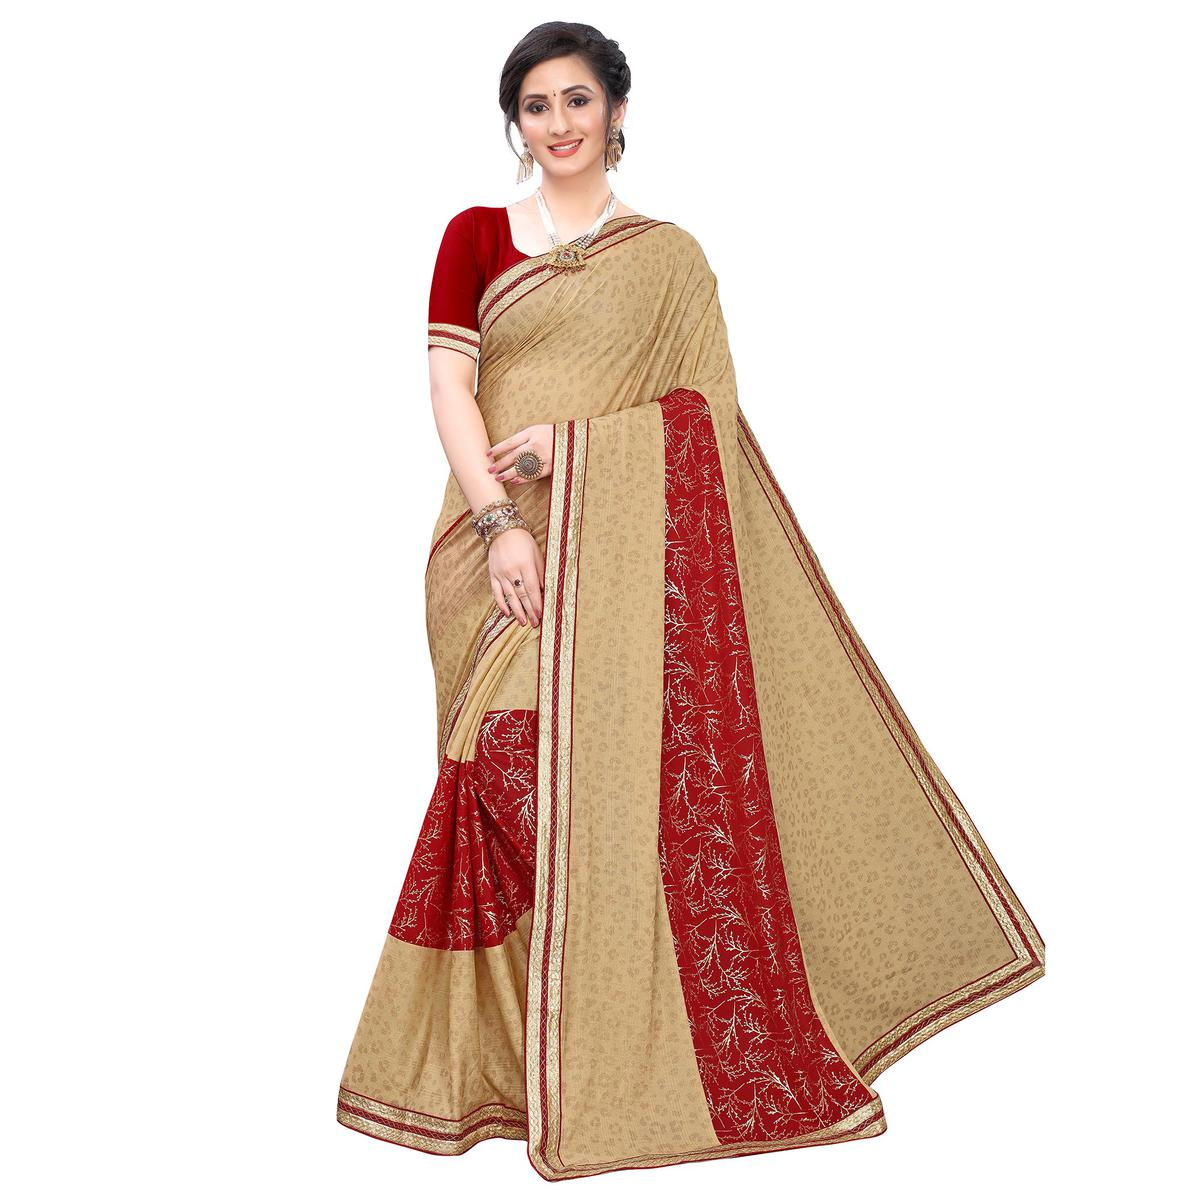 Delightful Beige-Red Colored Party Wear Foil Printed Lycra Blend Saree